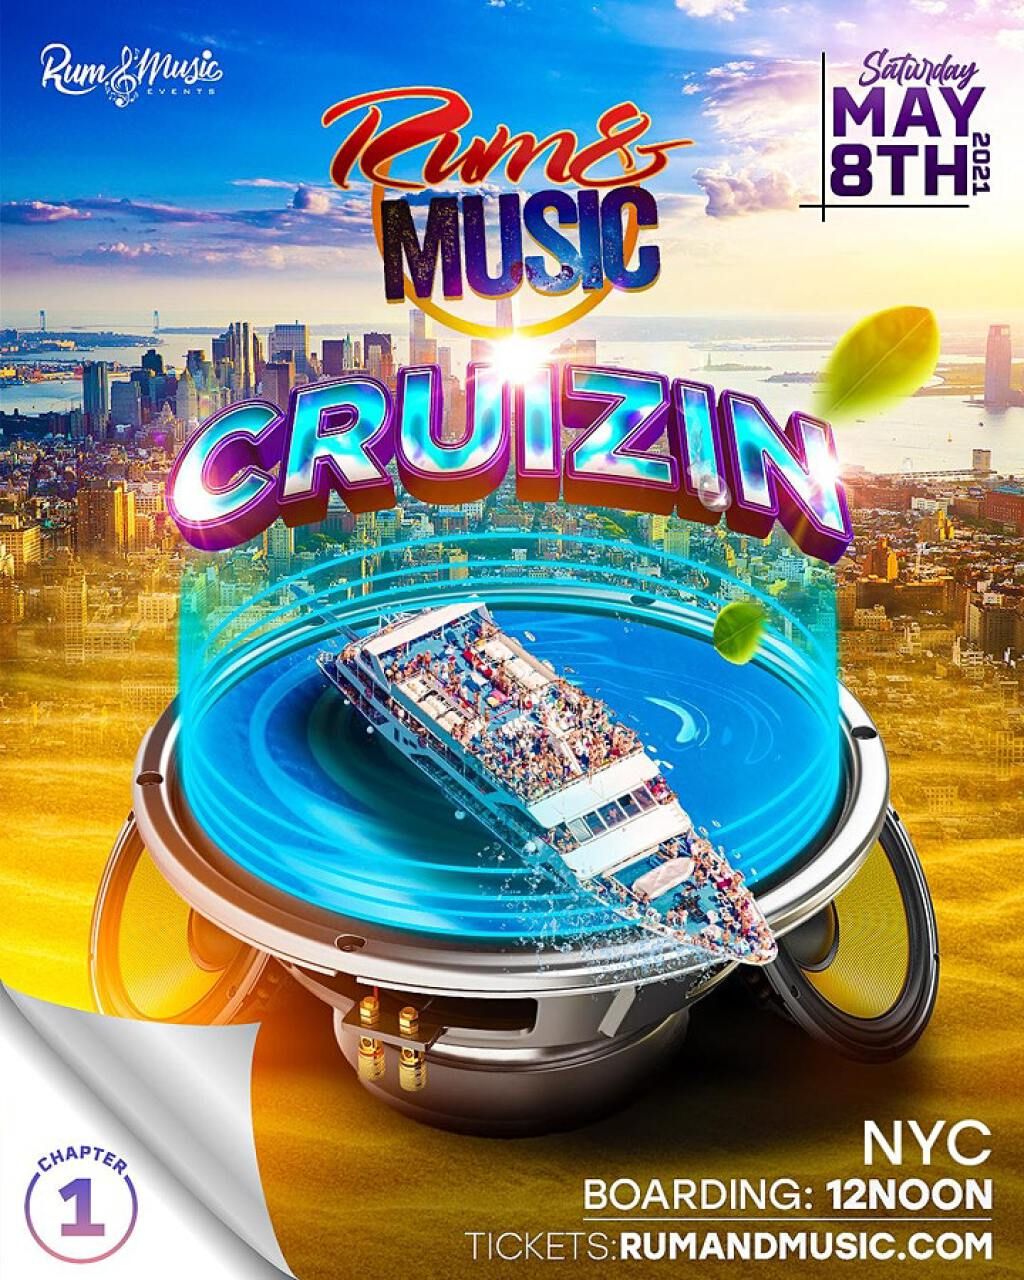 """Rum and Music """"CRUIZIN"""" flyer or graphic."""